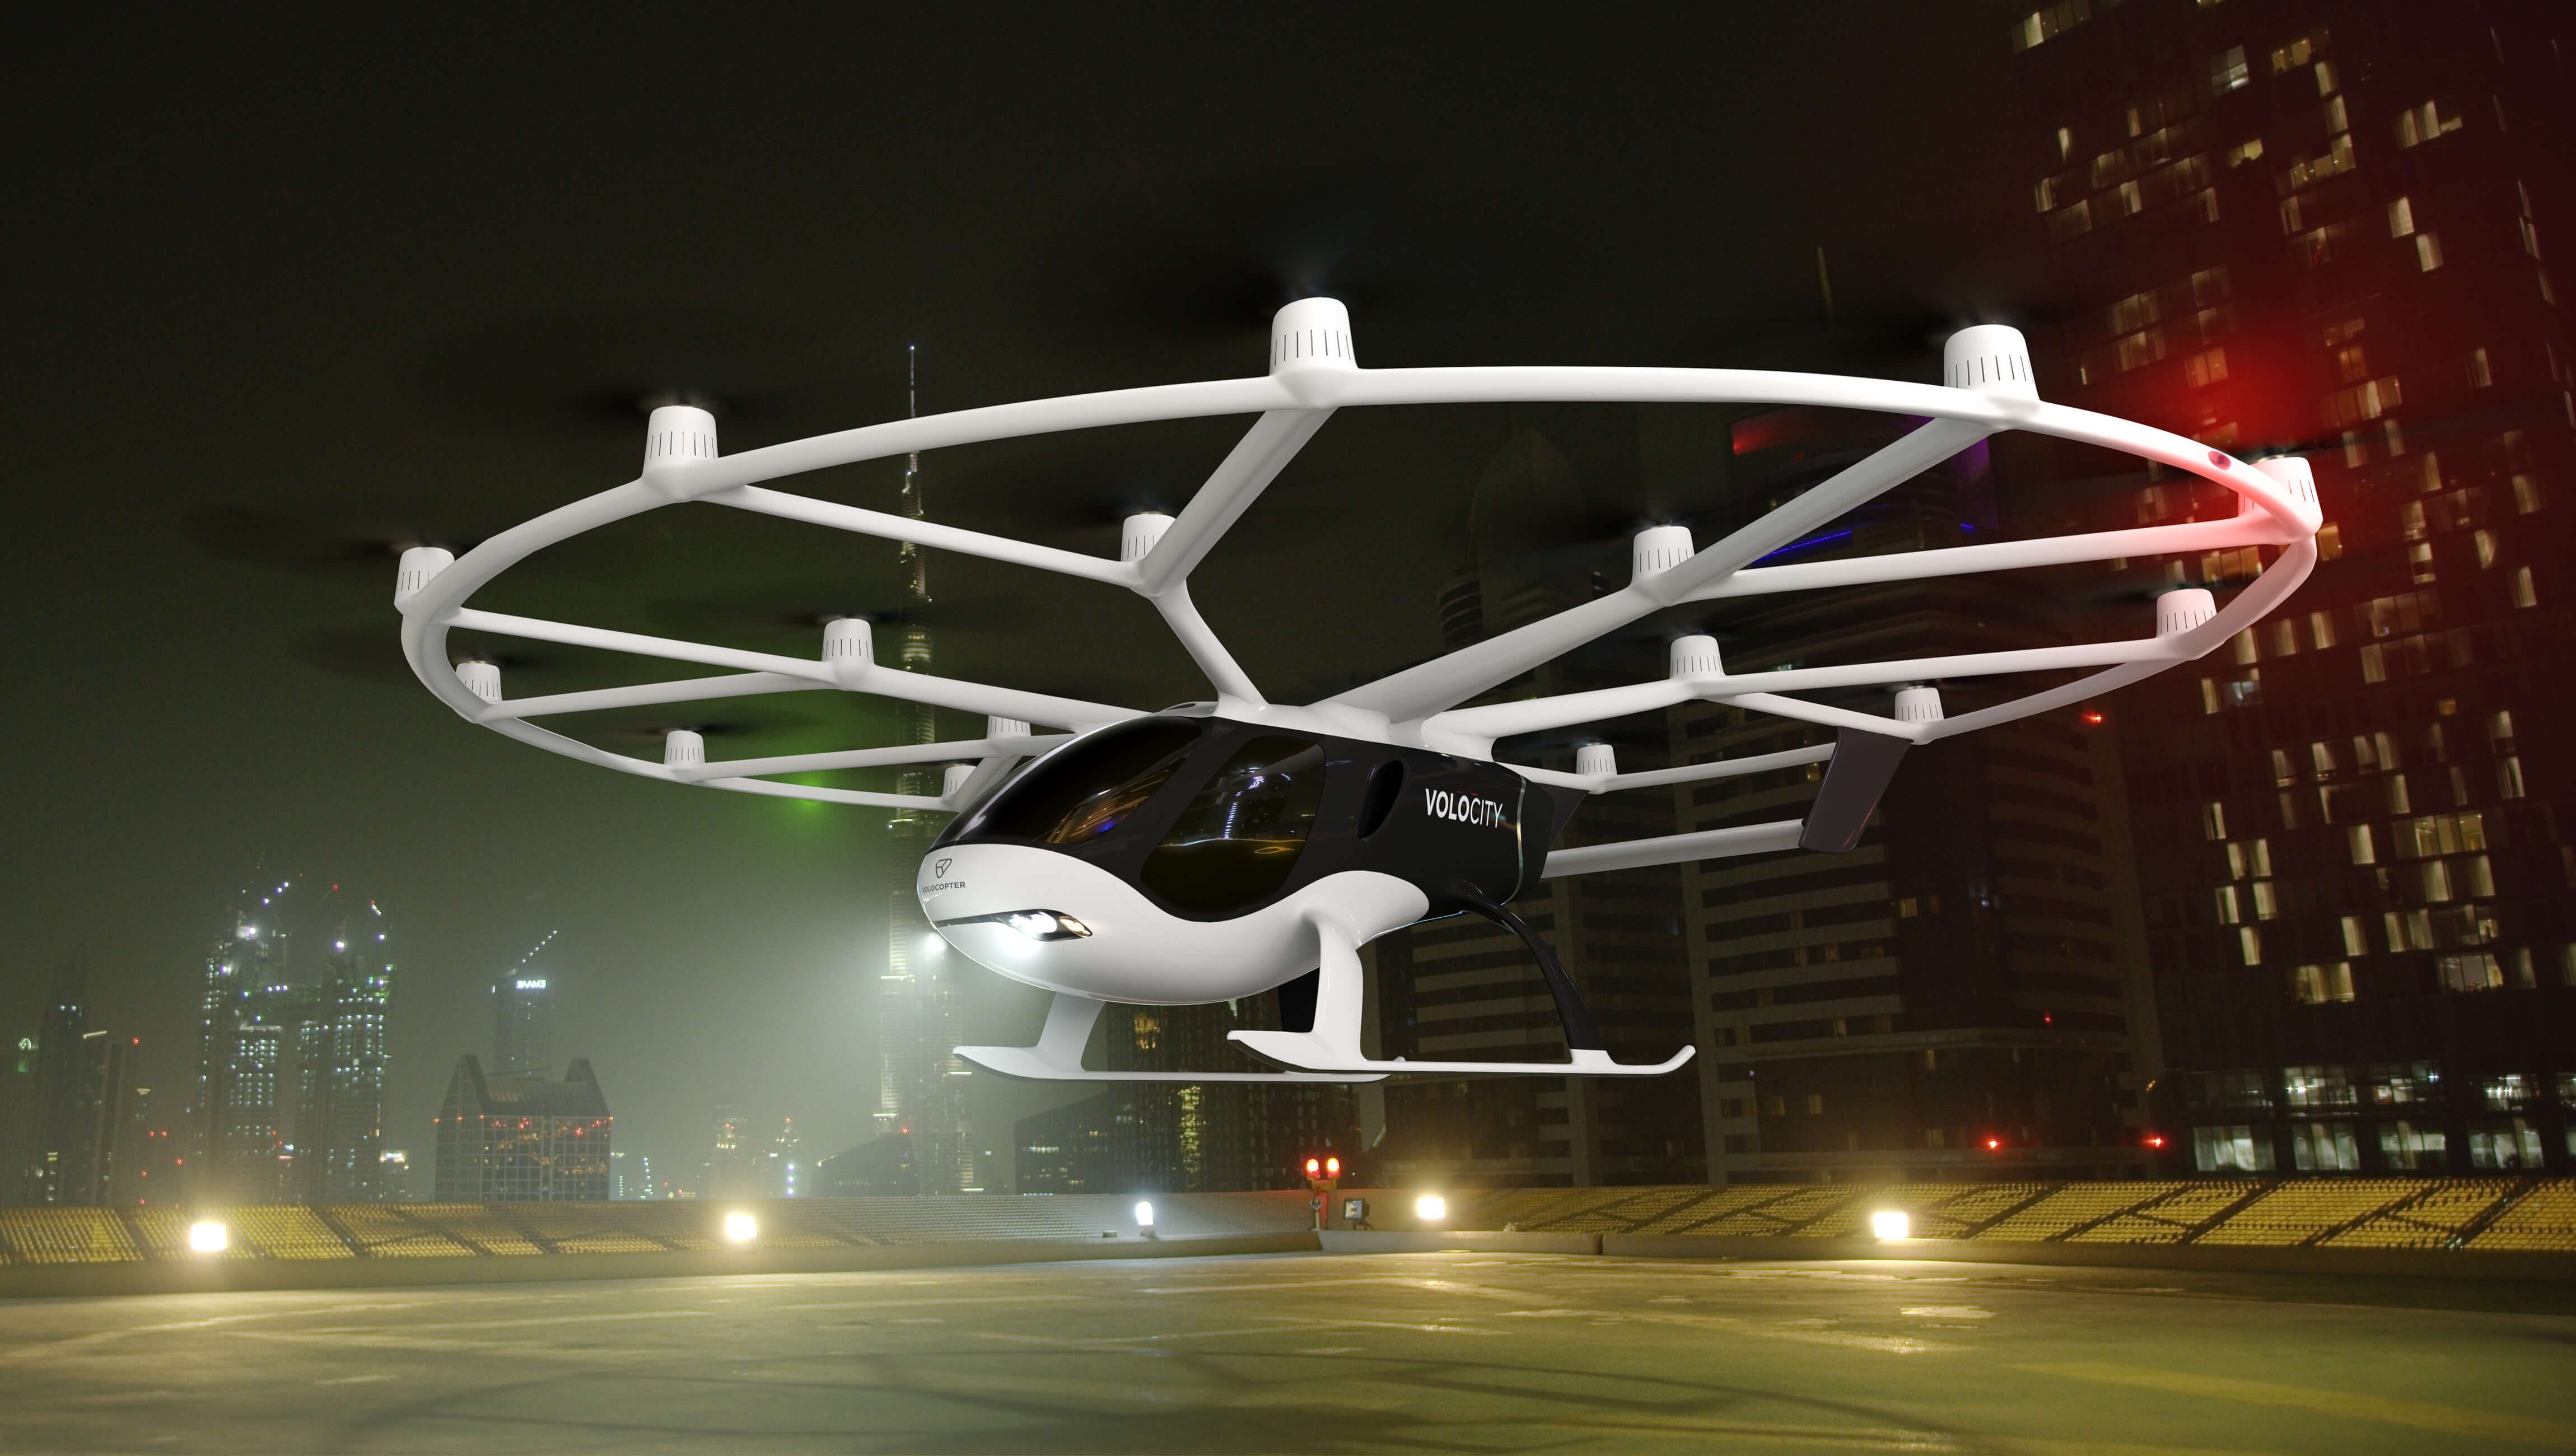 The final version of the flying taxi VoloCity